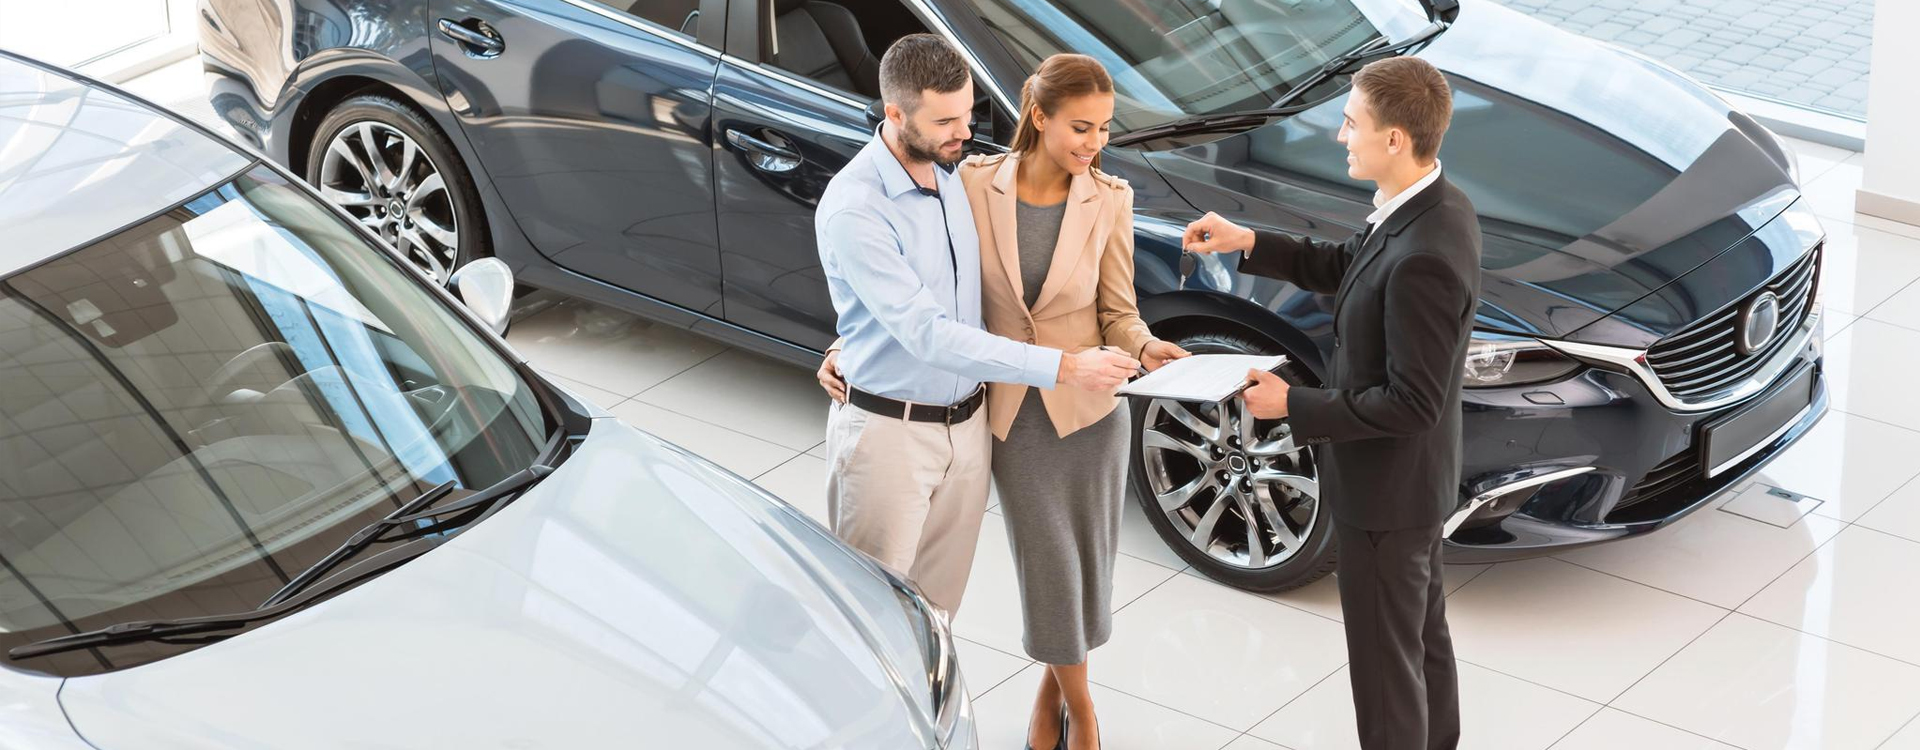 Buying Insurance for Your New Car